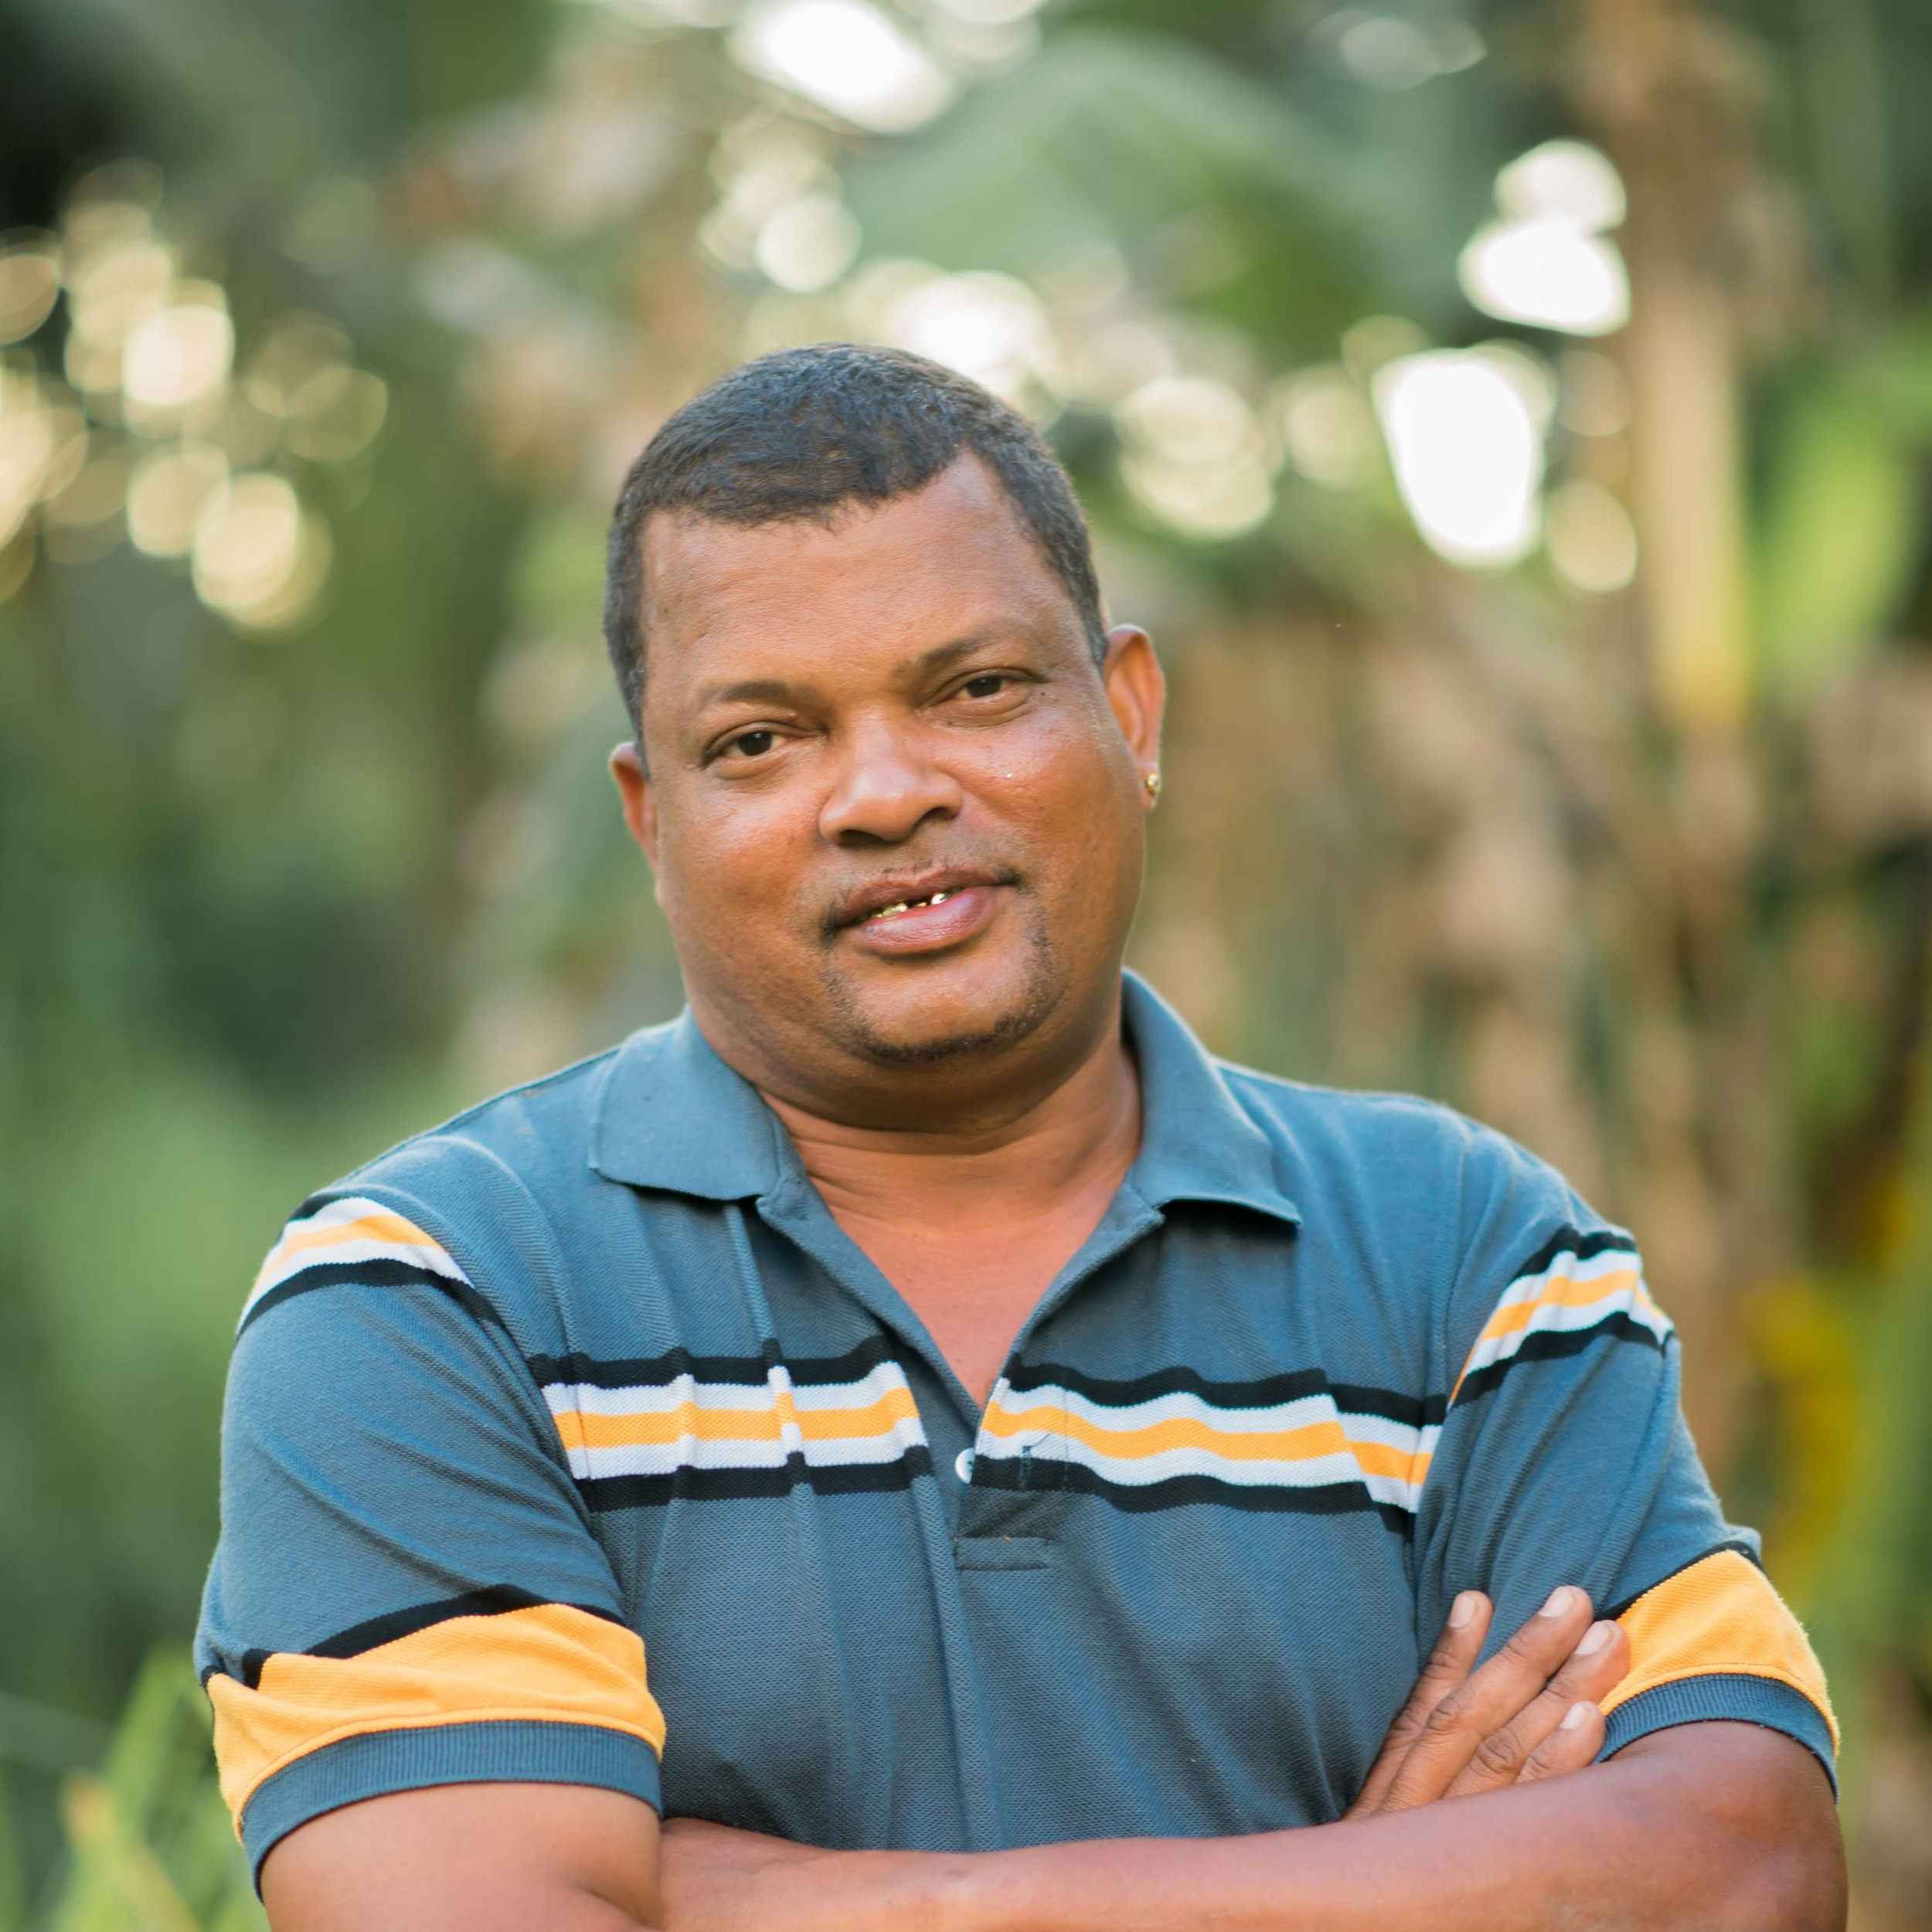 Gary Grant - Gary is the Estate Manager at Stoll in Guyana. Educated at the Guyana School of Agriculture, he previously worked for the Guyana Rice Development Board and the Demerara Company. His hobbies including bee keeping, Manchester City Football Club and repairing the excavator.